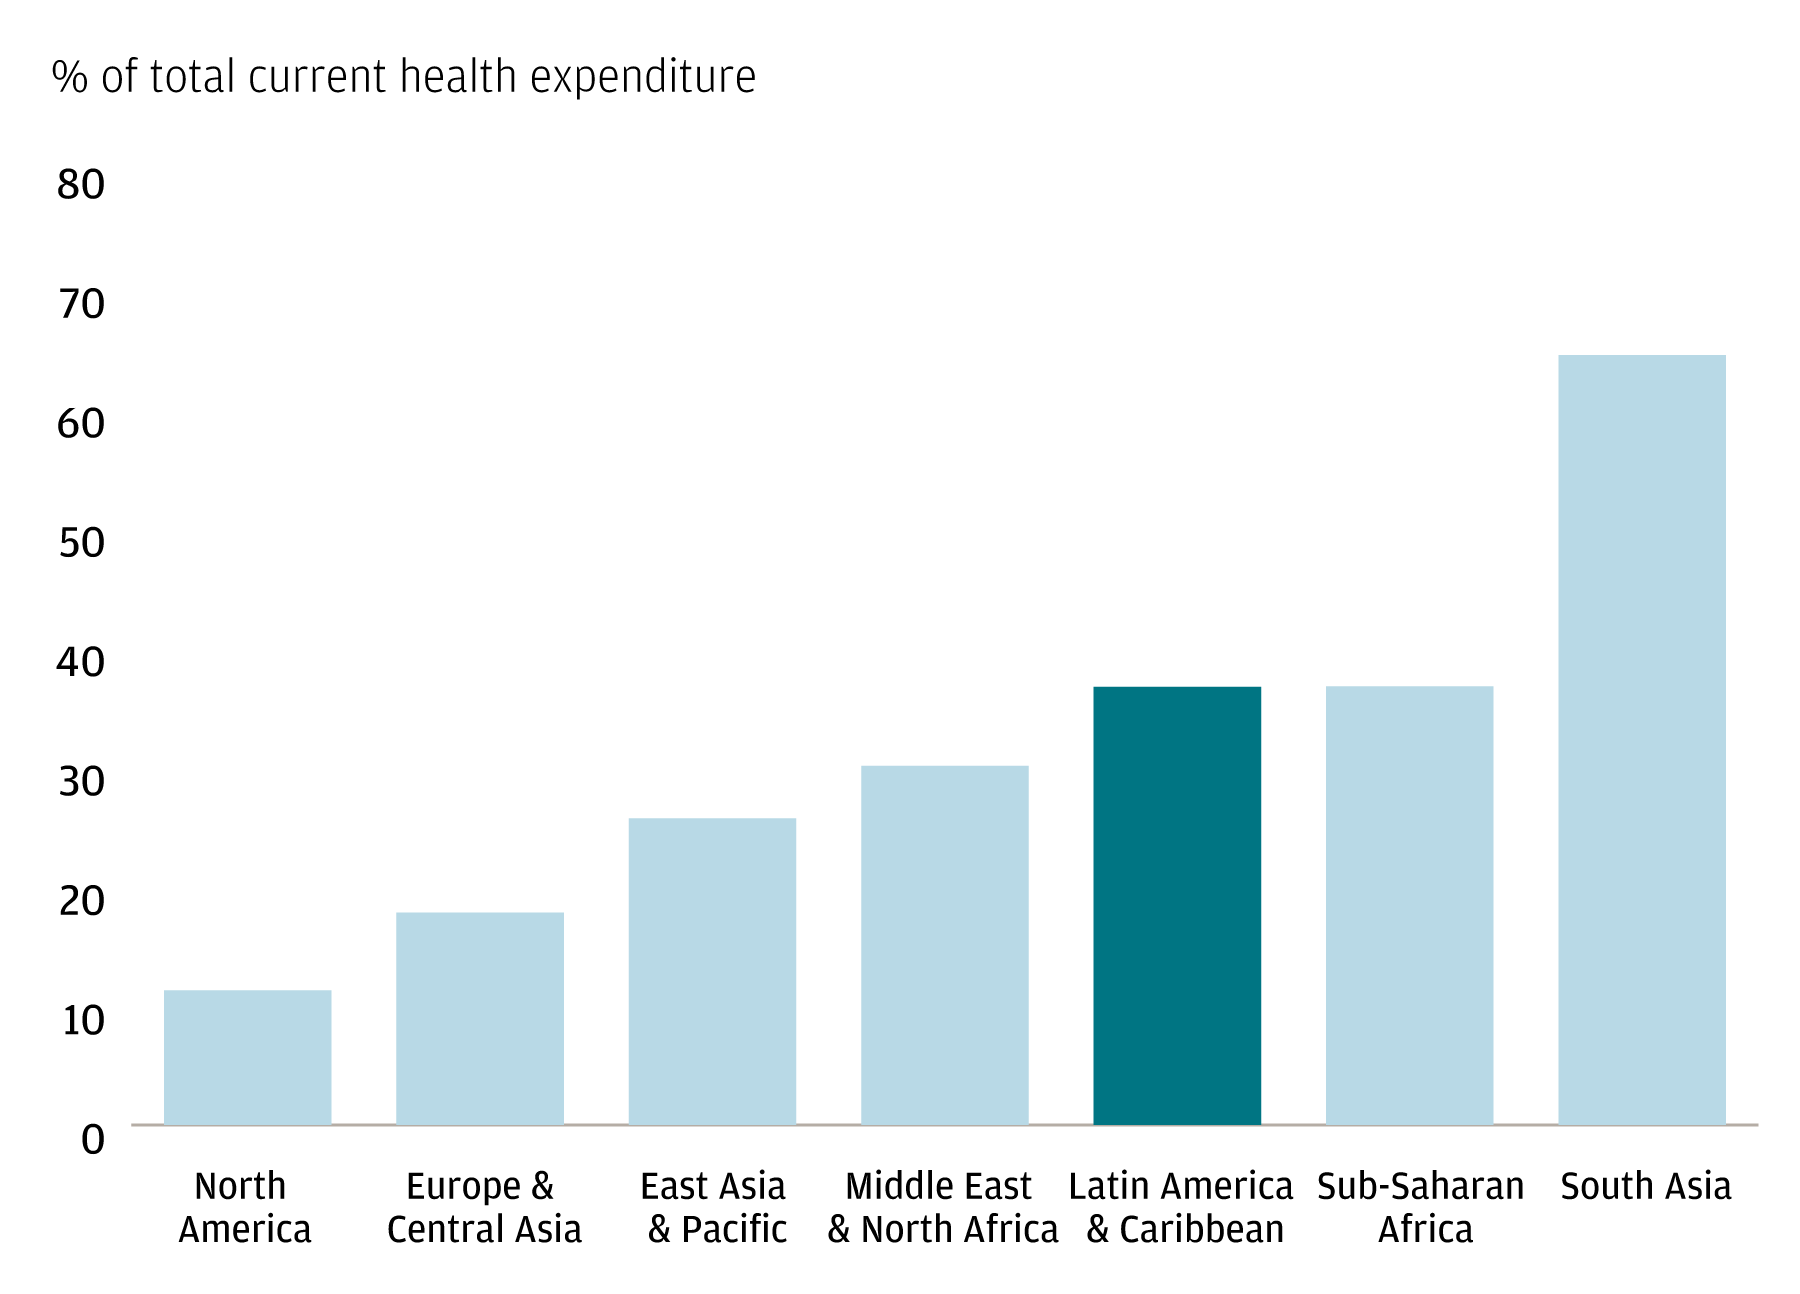 A bar graph showing the percentage of out-of-pocket health expenditures for North America, Europe and Central Asia, East Asia and the Pacific, the Middle East and North Africa, Latin America and the Caribbean, Sub-Saharan Africa and South Asia.